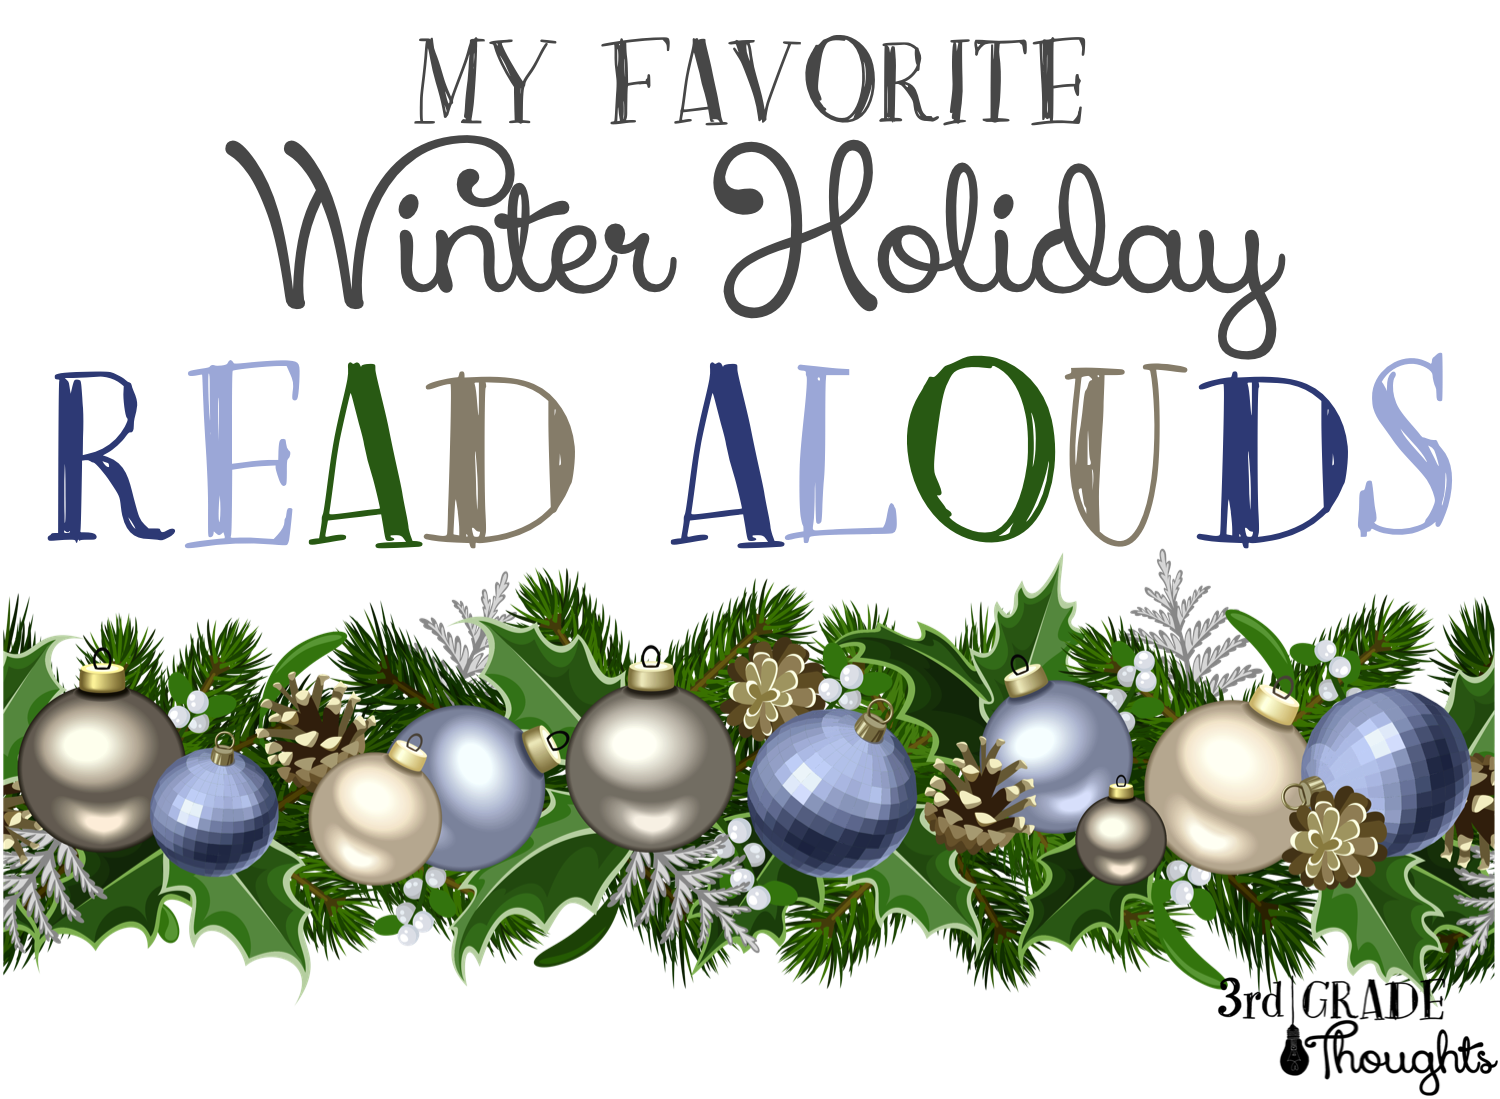 My Favorite Winter Holiday Read Alouds - 3rd Grade Thoughts